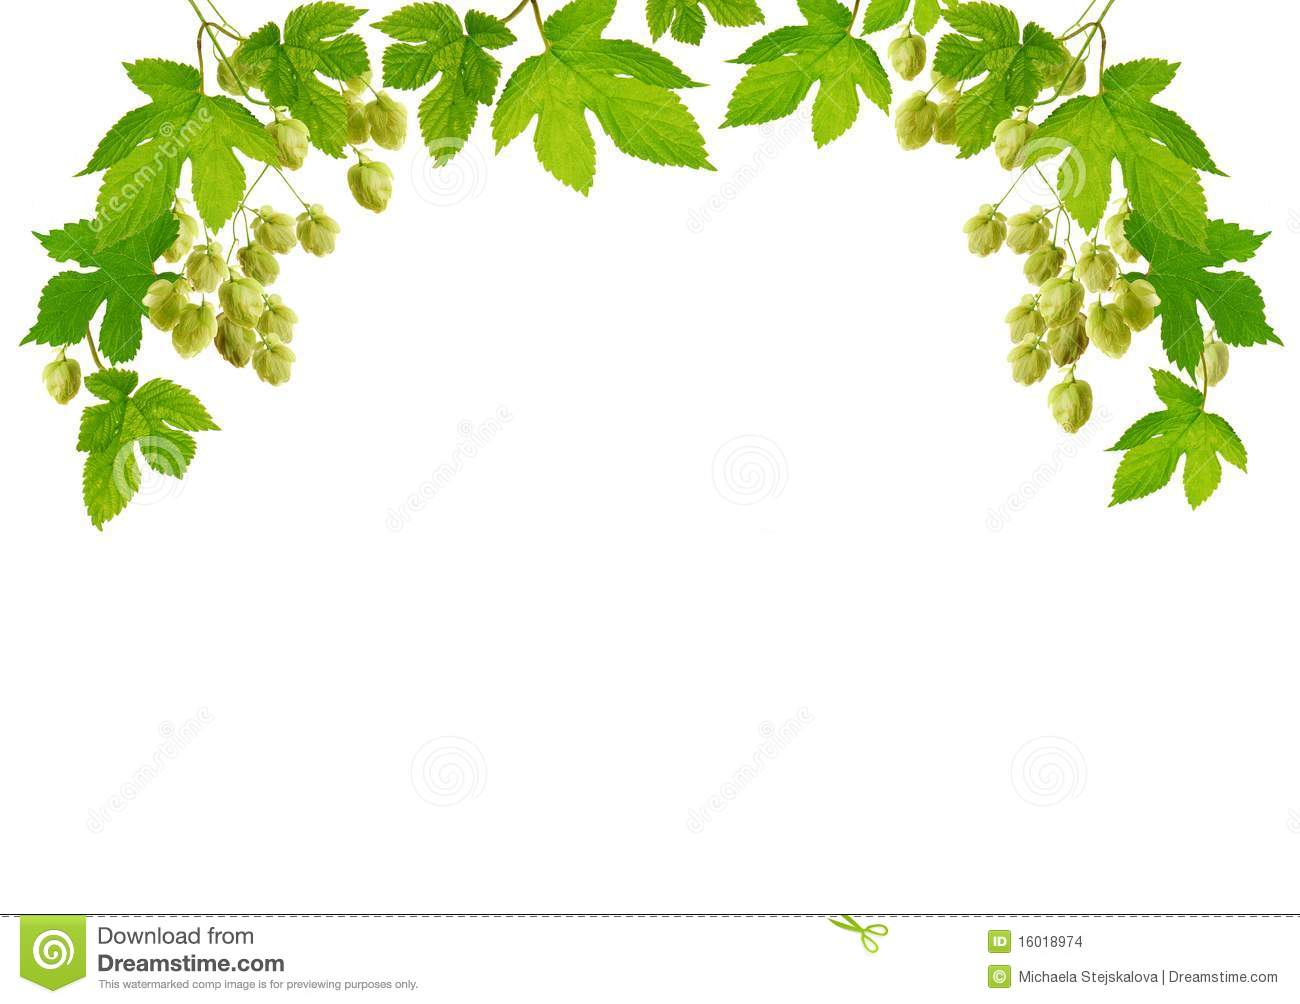 Border of fresh hop plant with cones, isolated on white background.